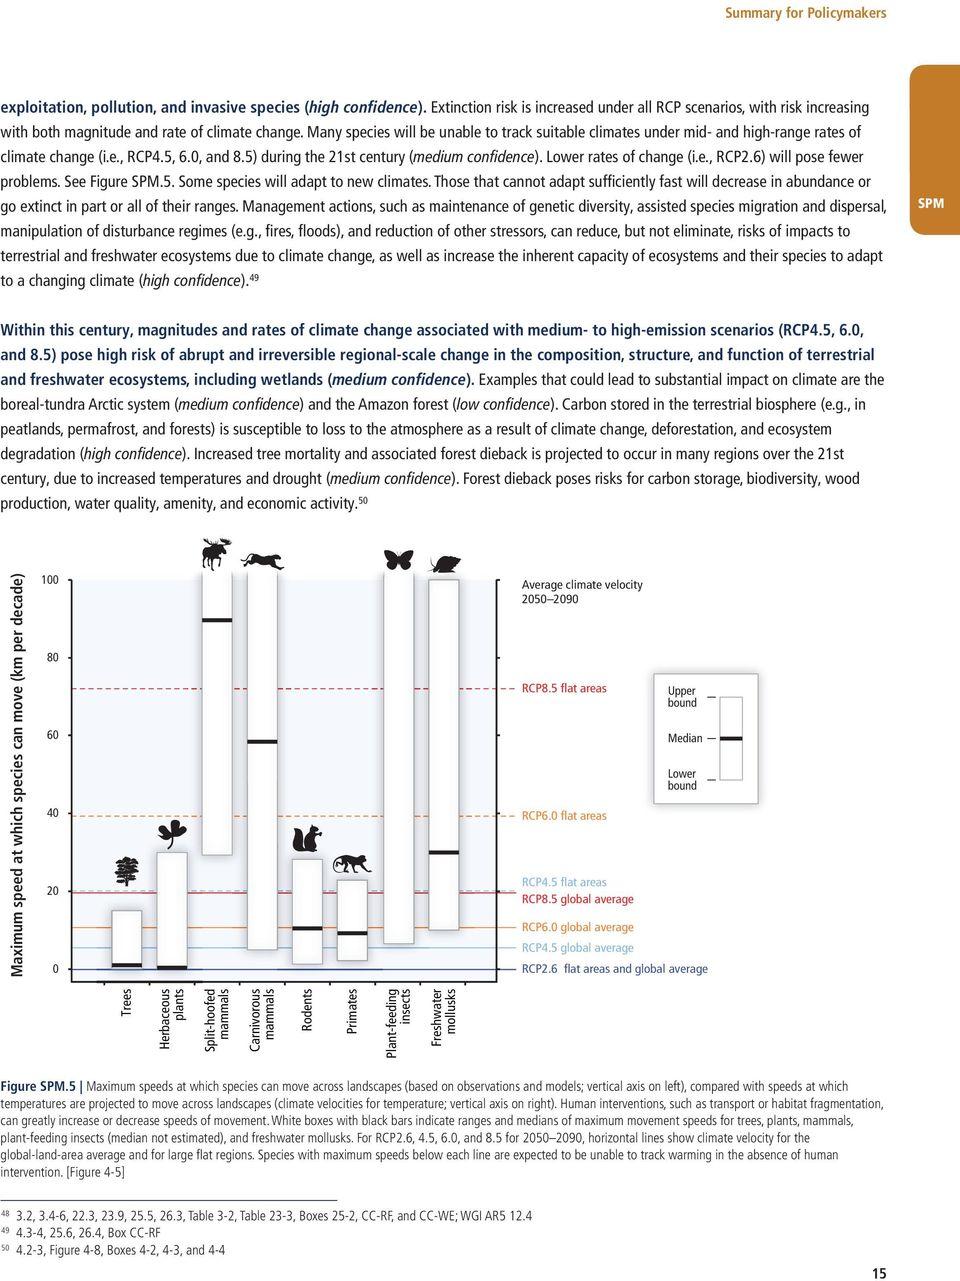 e., RCP2.6) will pose fewer problems. See Figure.5. Some species will adapt to new climates.